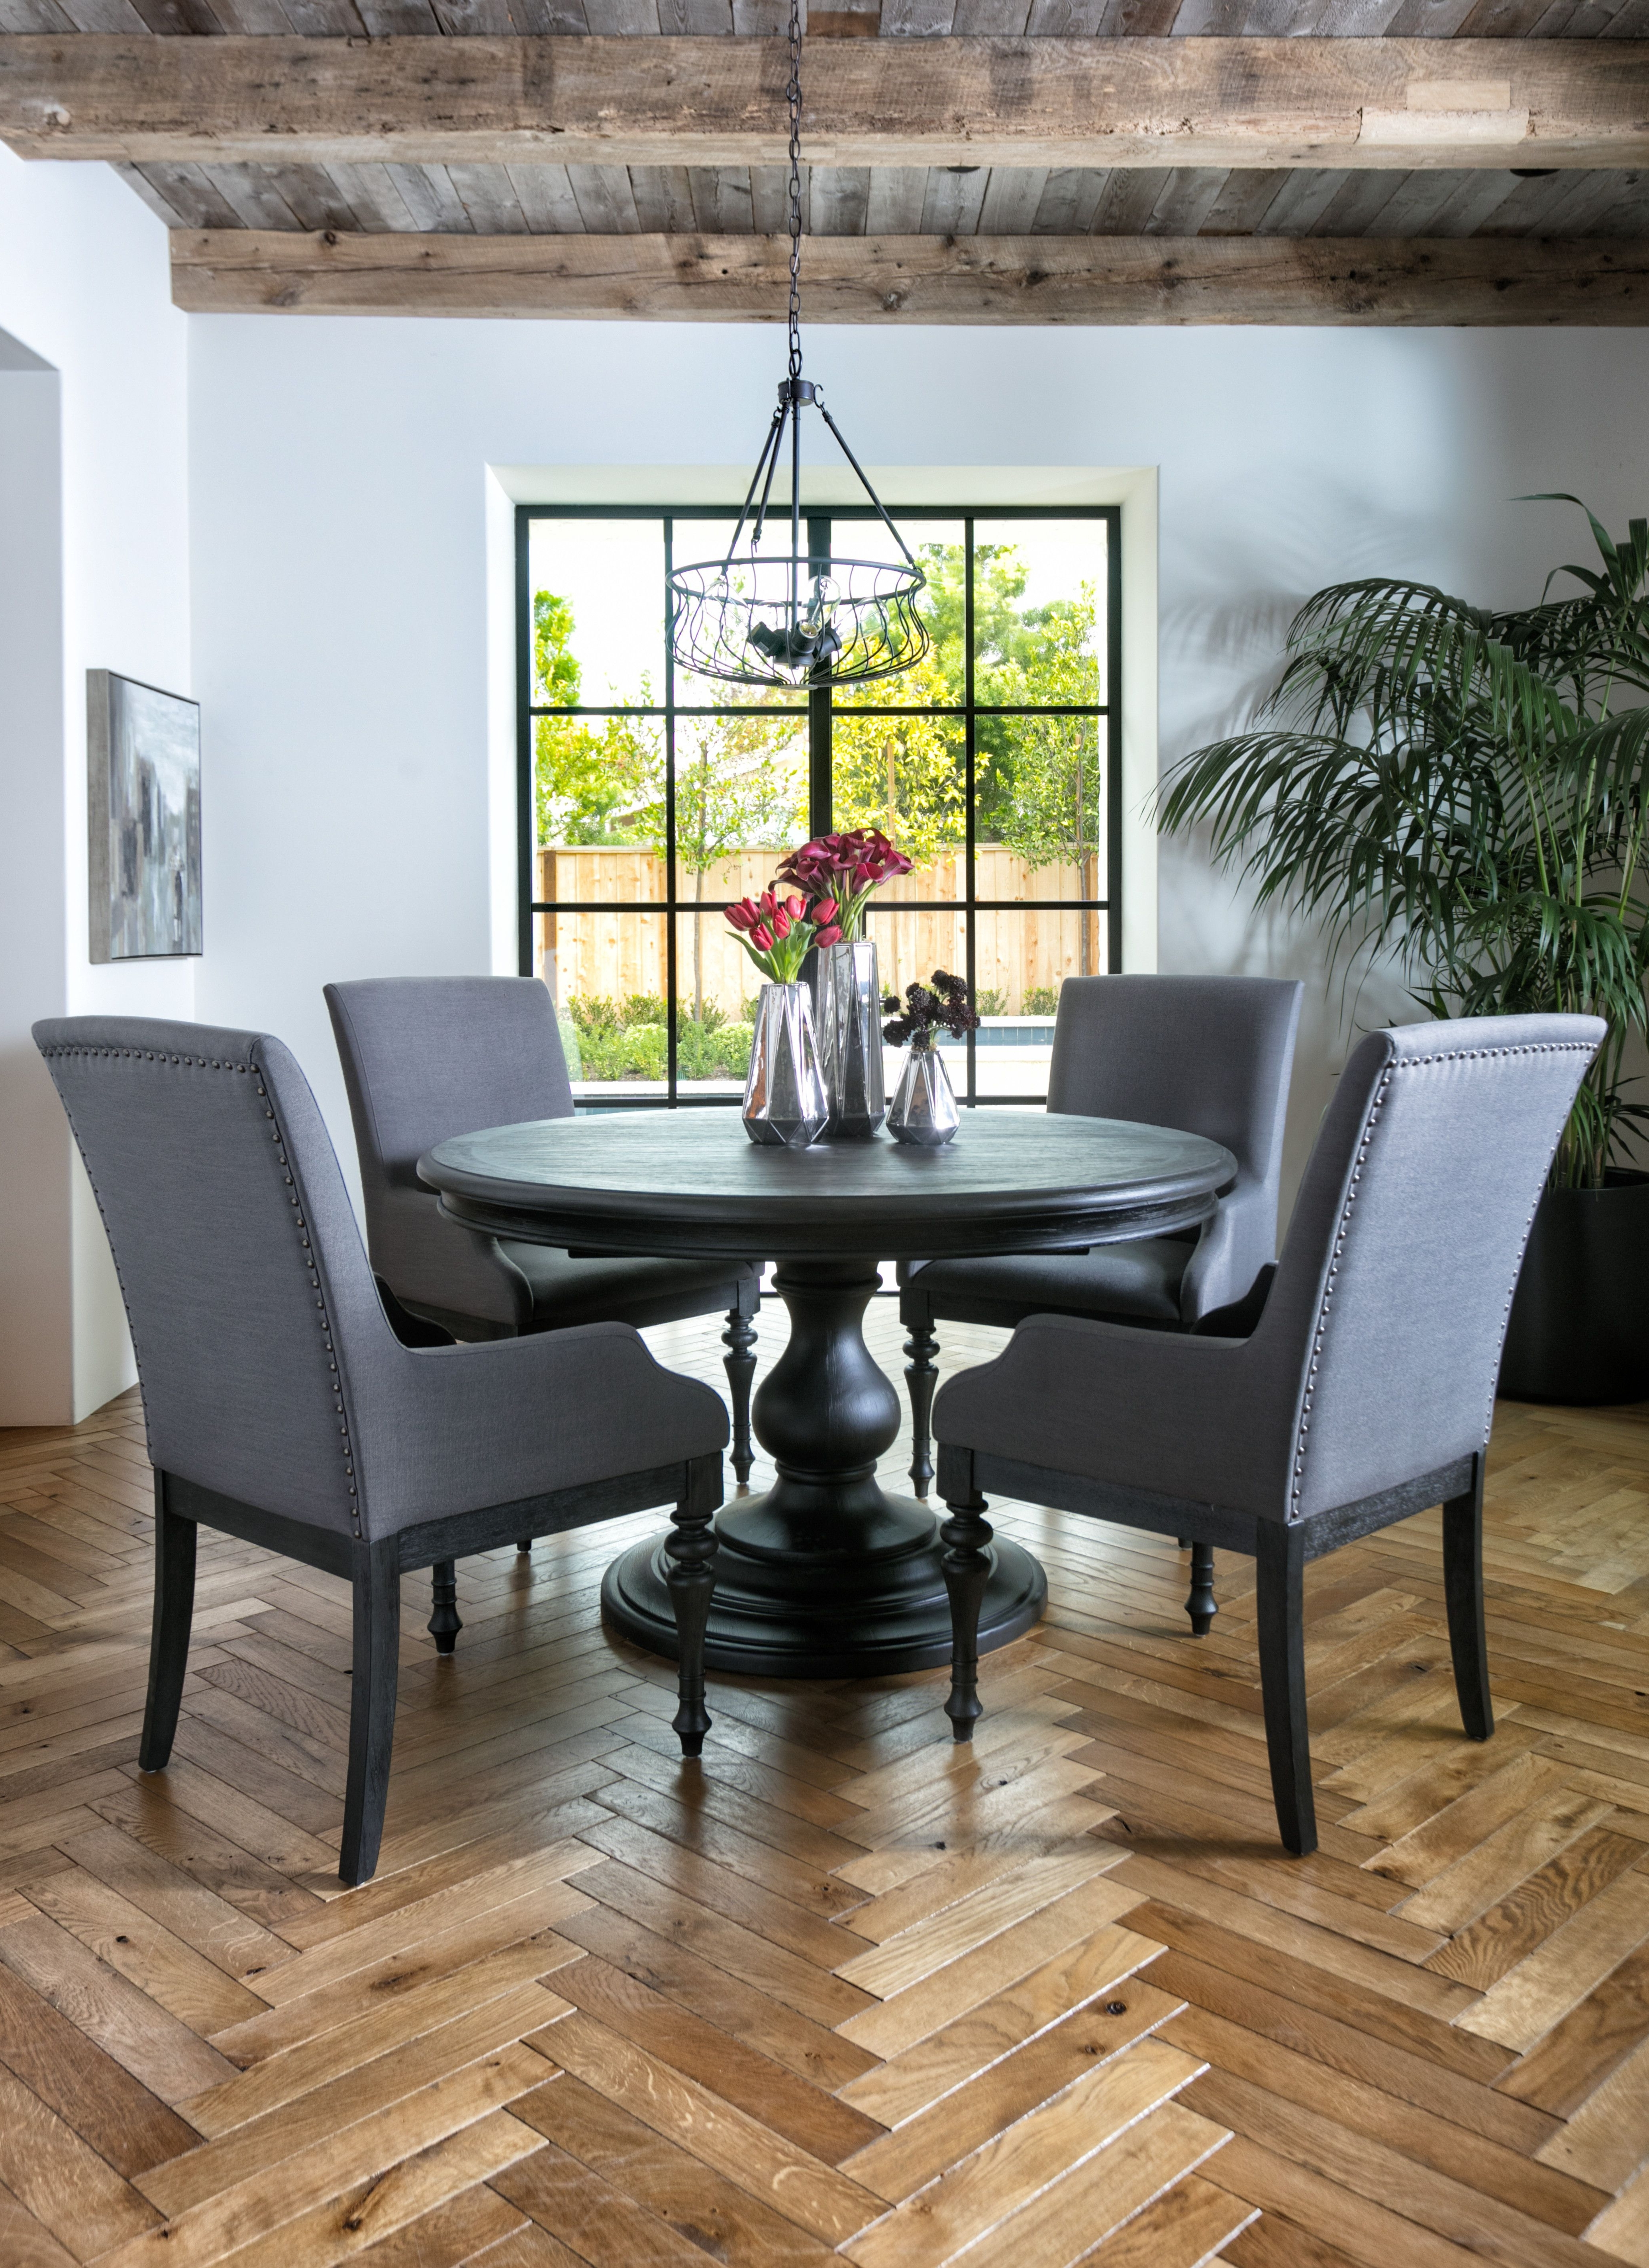 Caira Black 5 Piece Round Dining Sets With Upholstered Side Chairs With Fashionable Caira Black 5 Piece Round Dining Set With Diamond Back Side Chairs (Gallery 1 of 25)